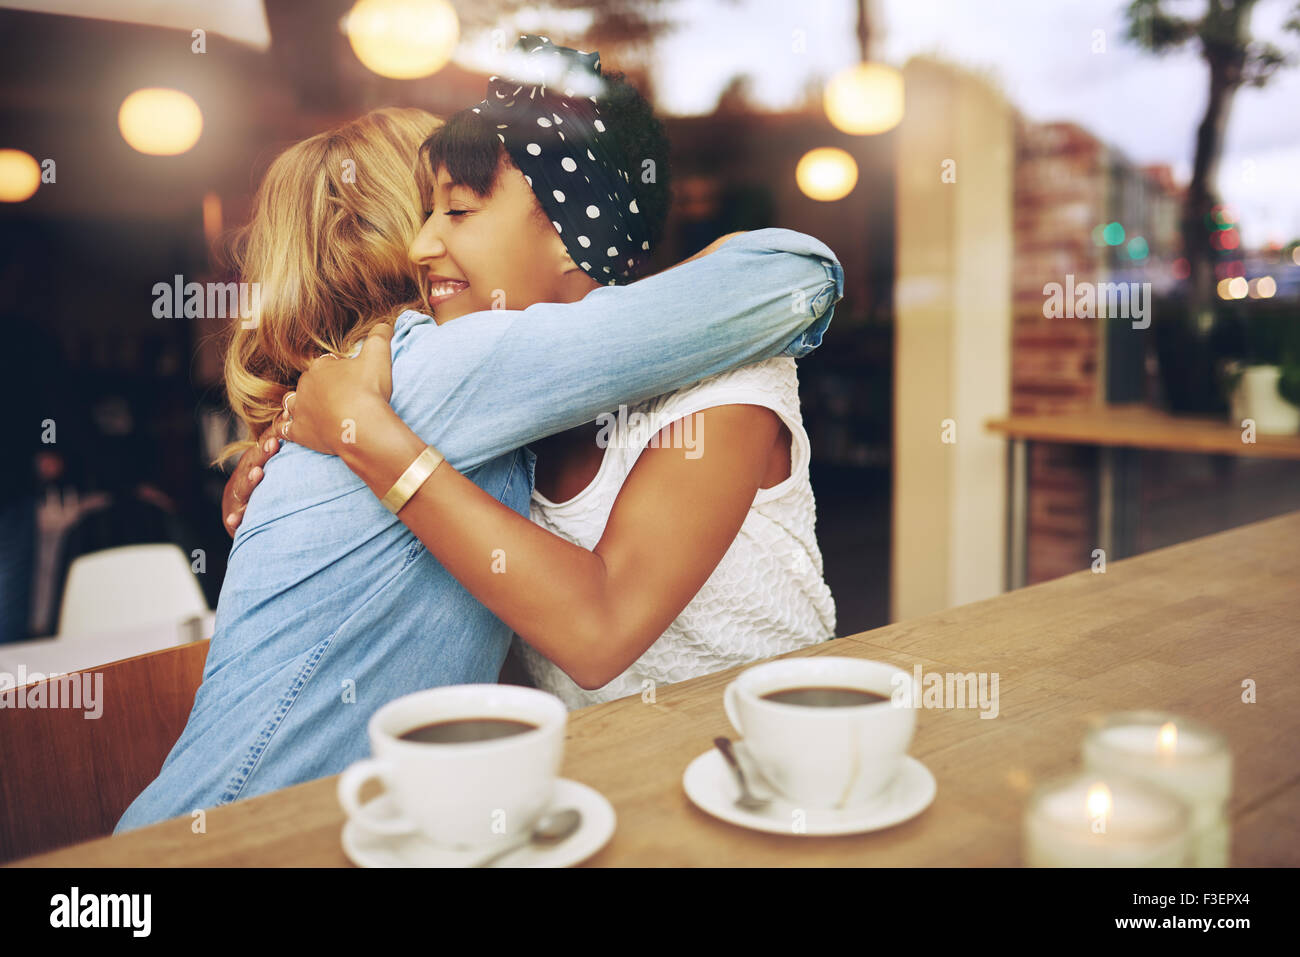 Two multi ethnic affectionate girl friends embracing as they sit in a coffee shop enjoying a cup of coffee together - Stock Image